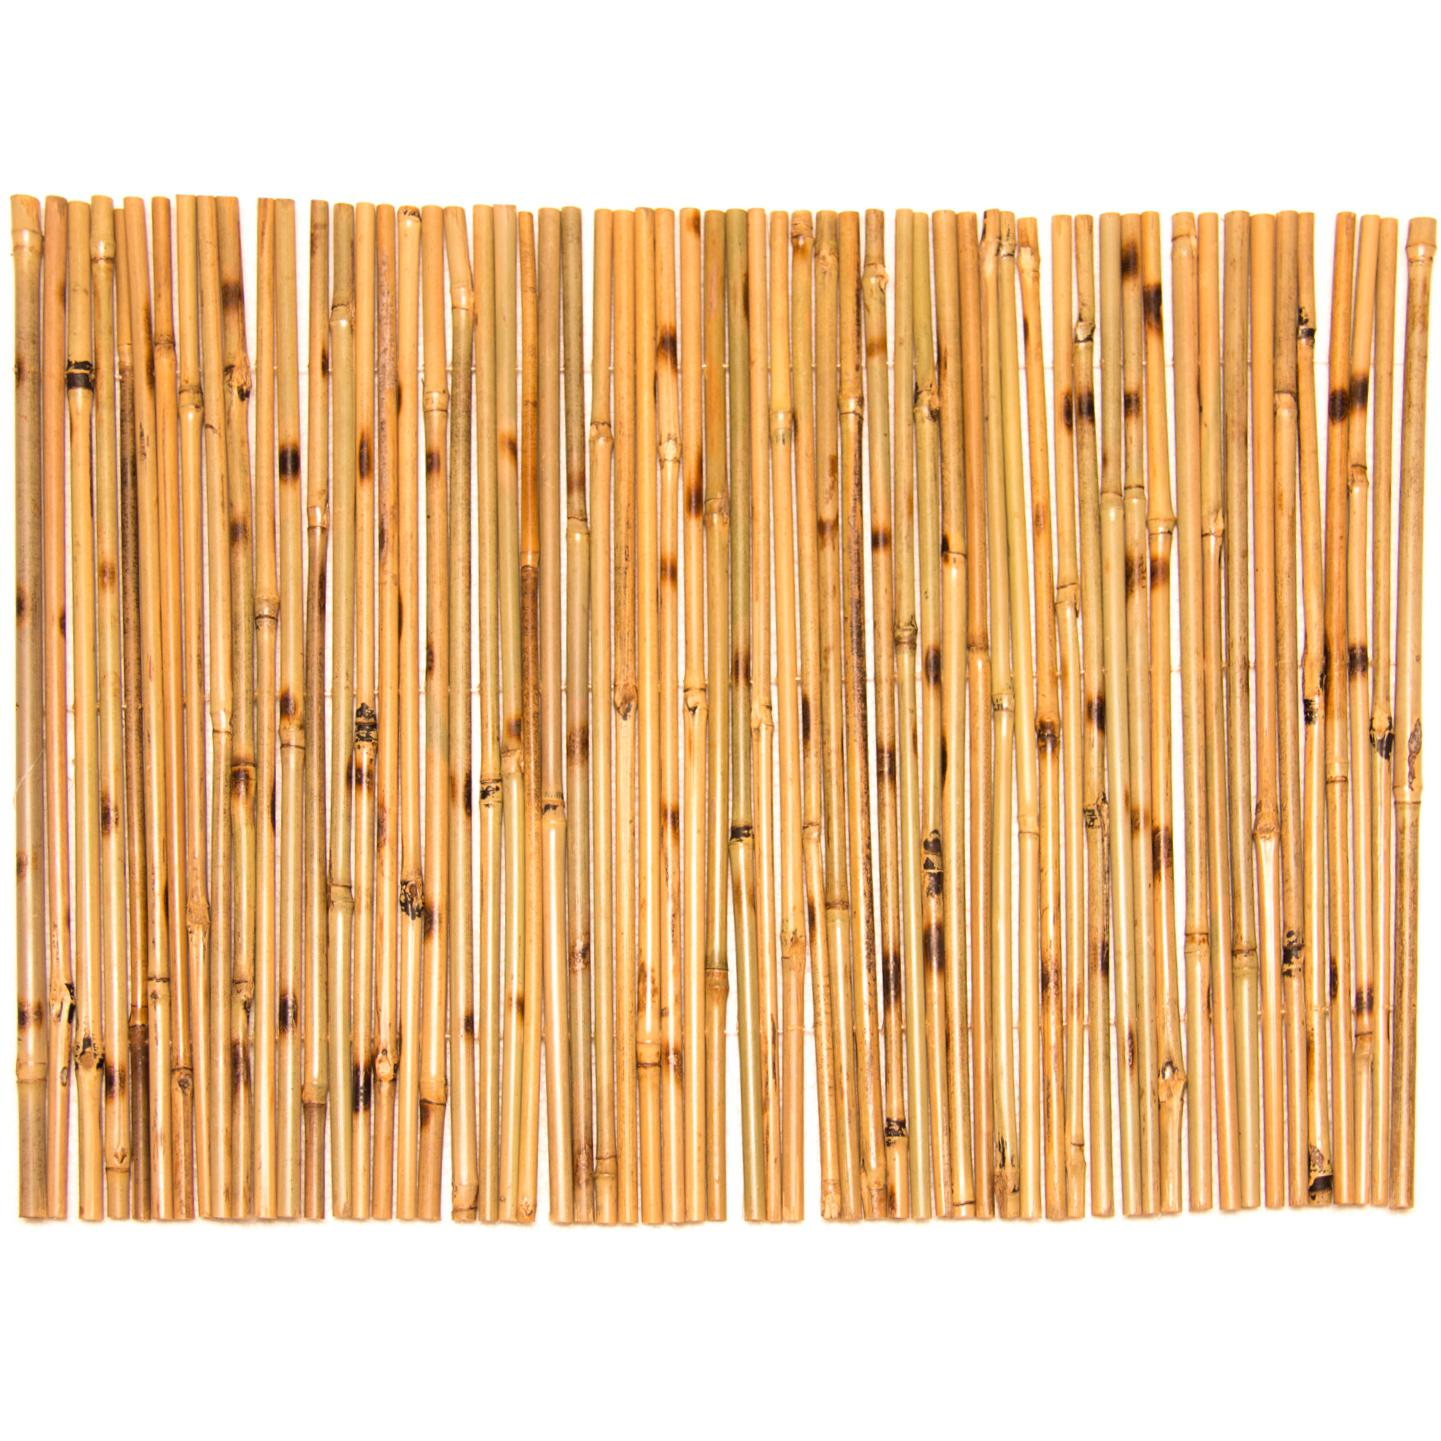 Picture of Bamboo 13 X 19 Placemat - Rust